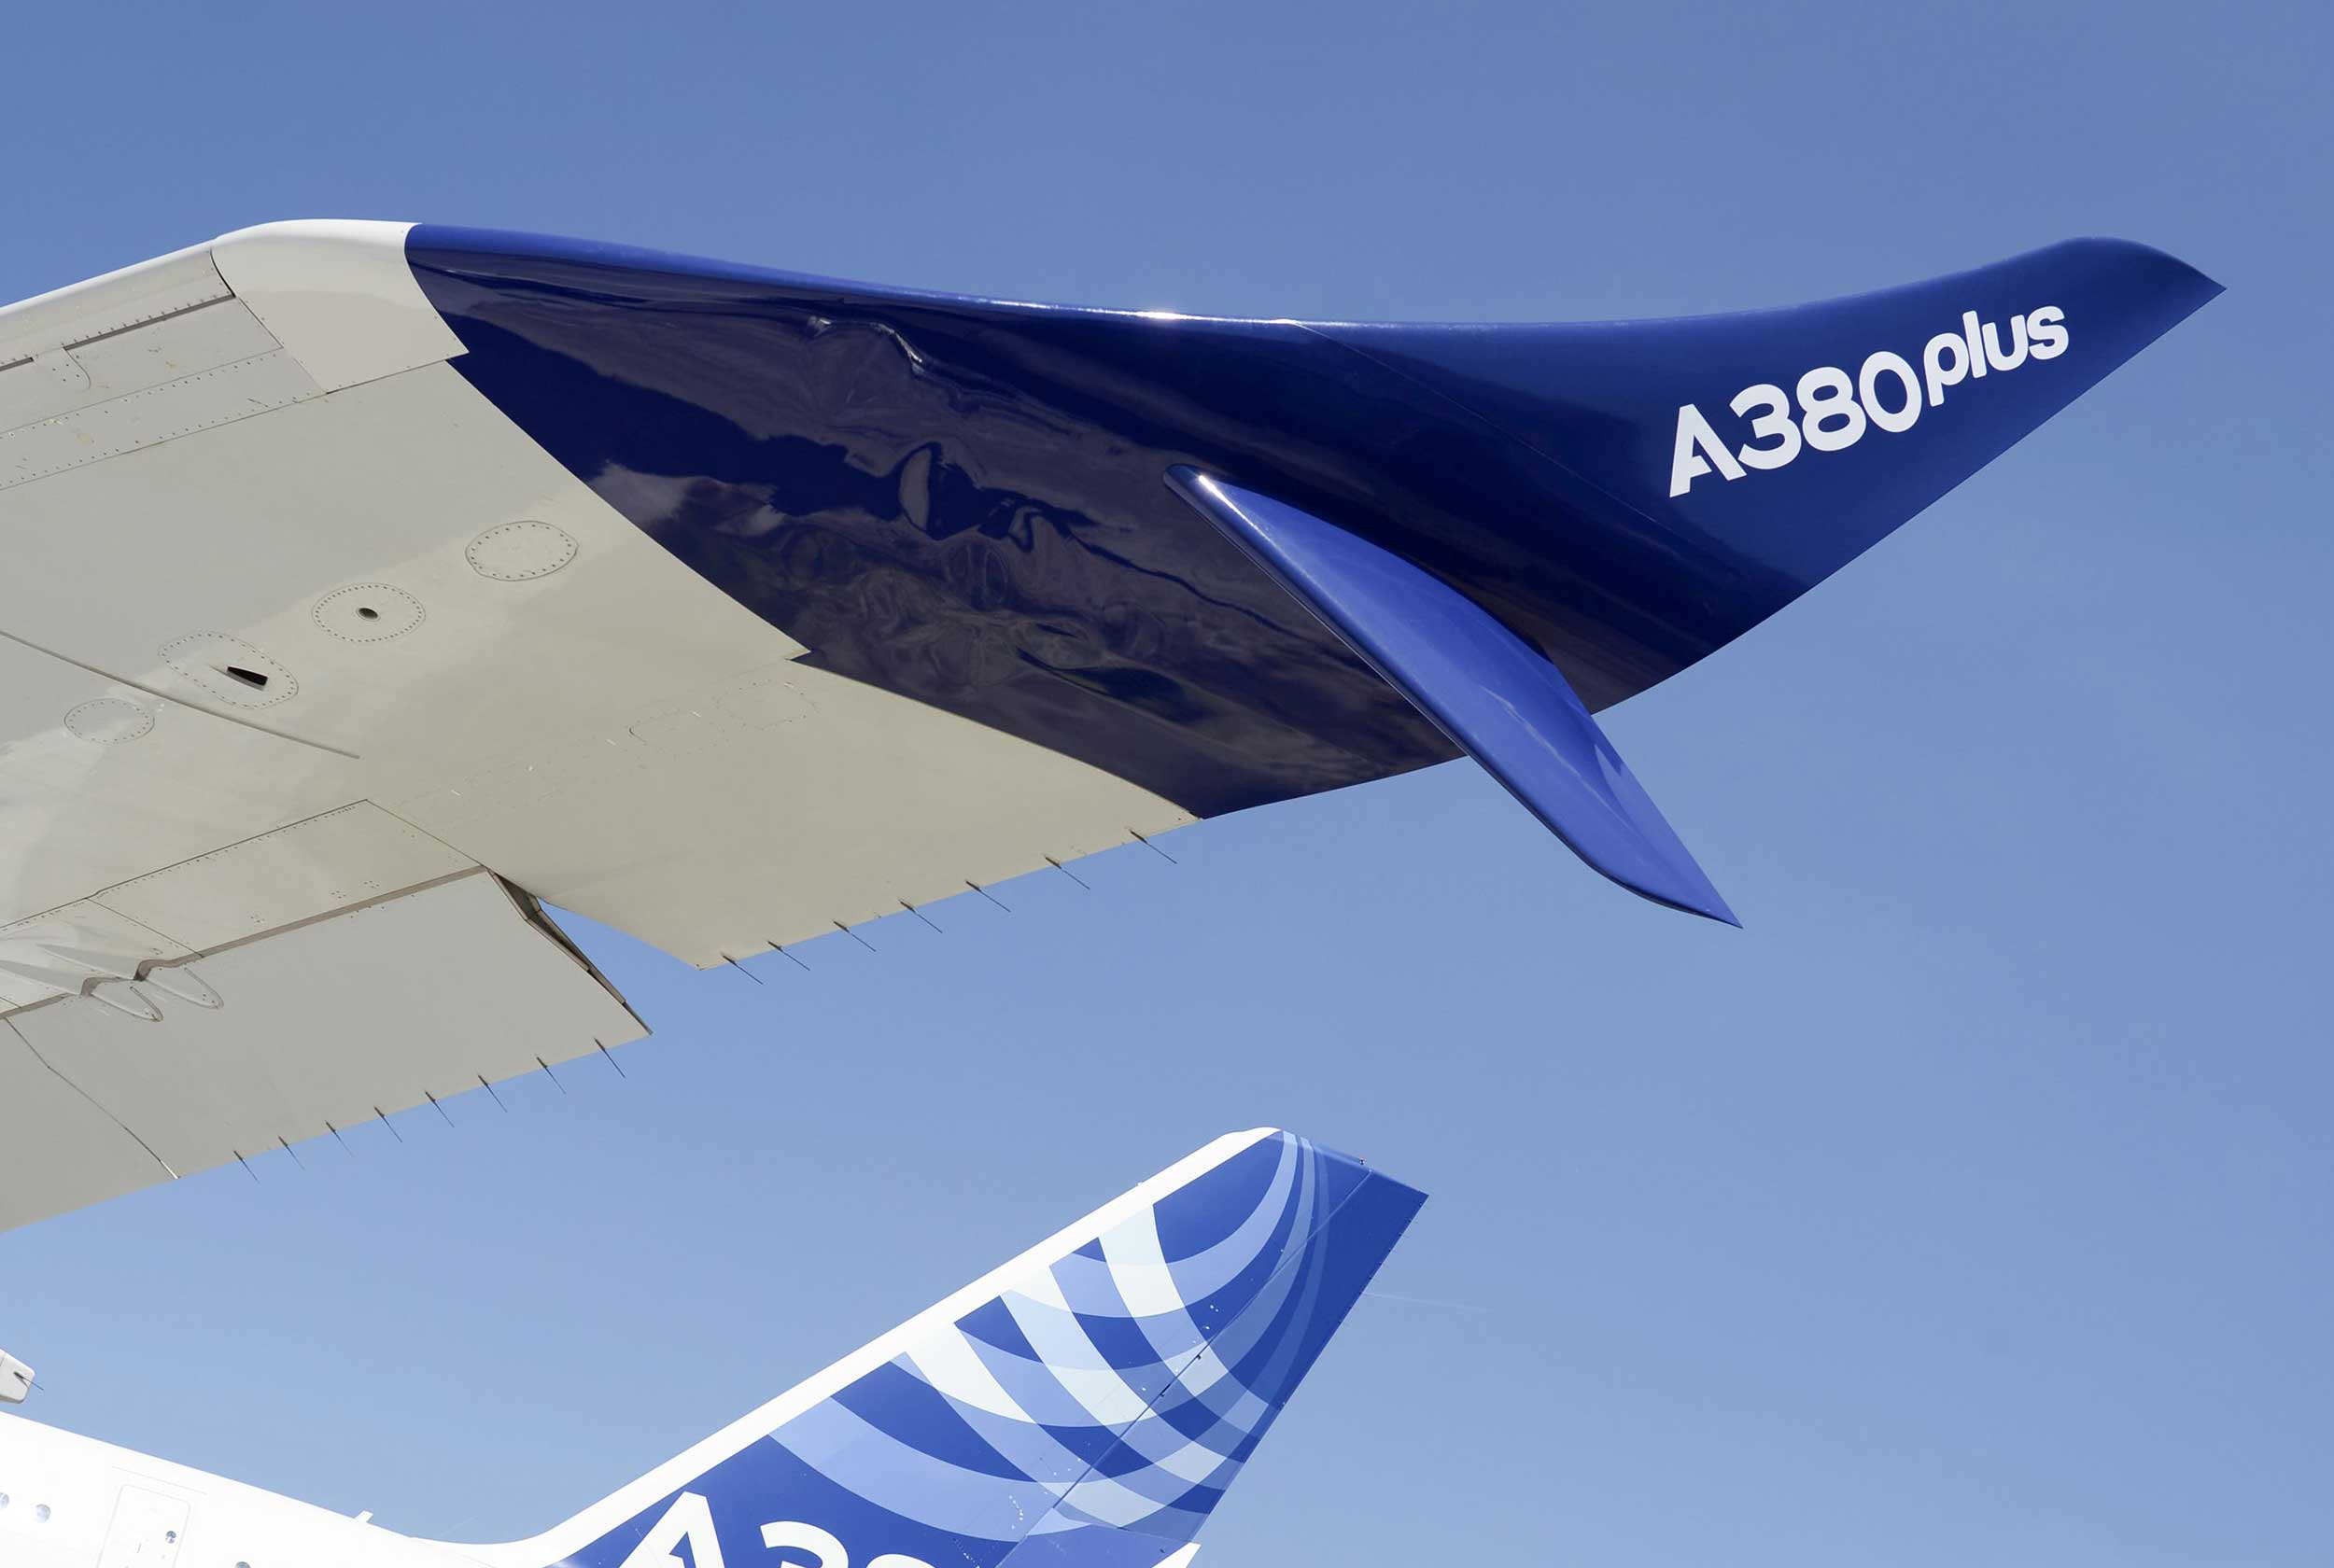 Airbus A380 plus winglet